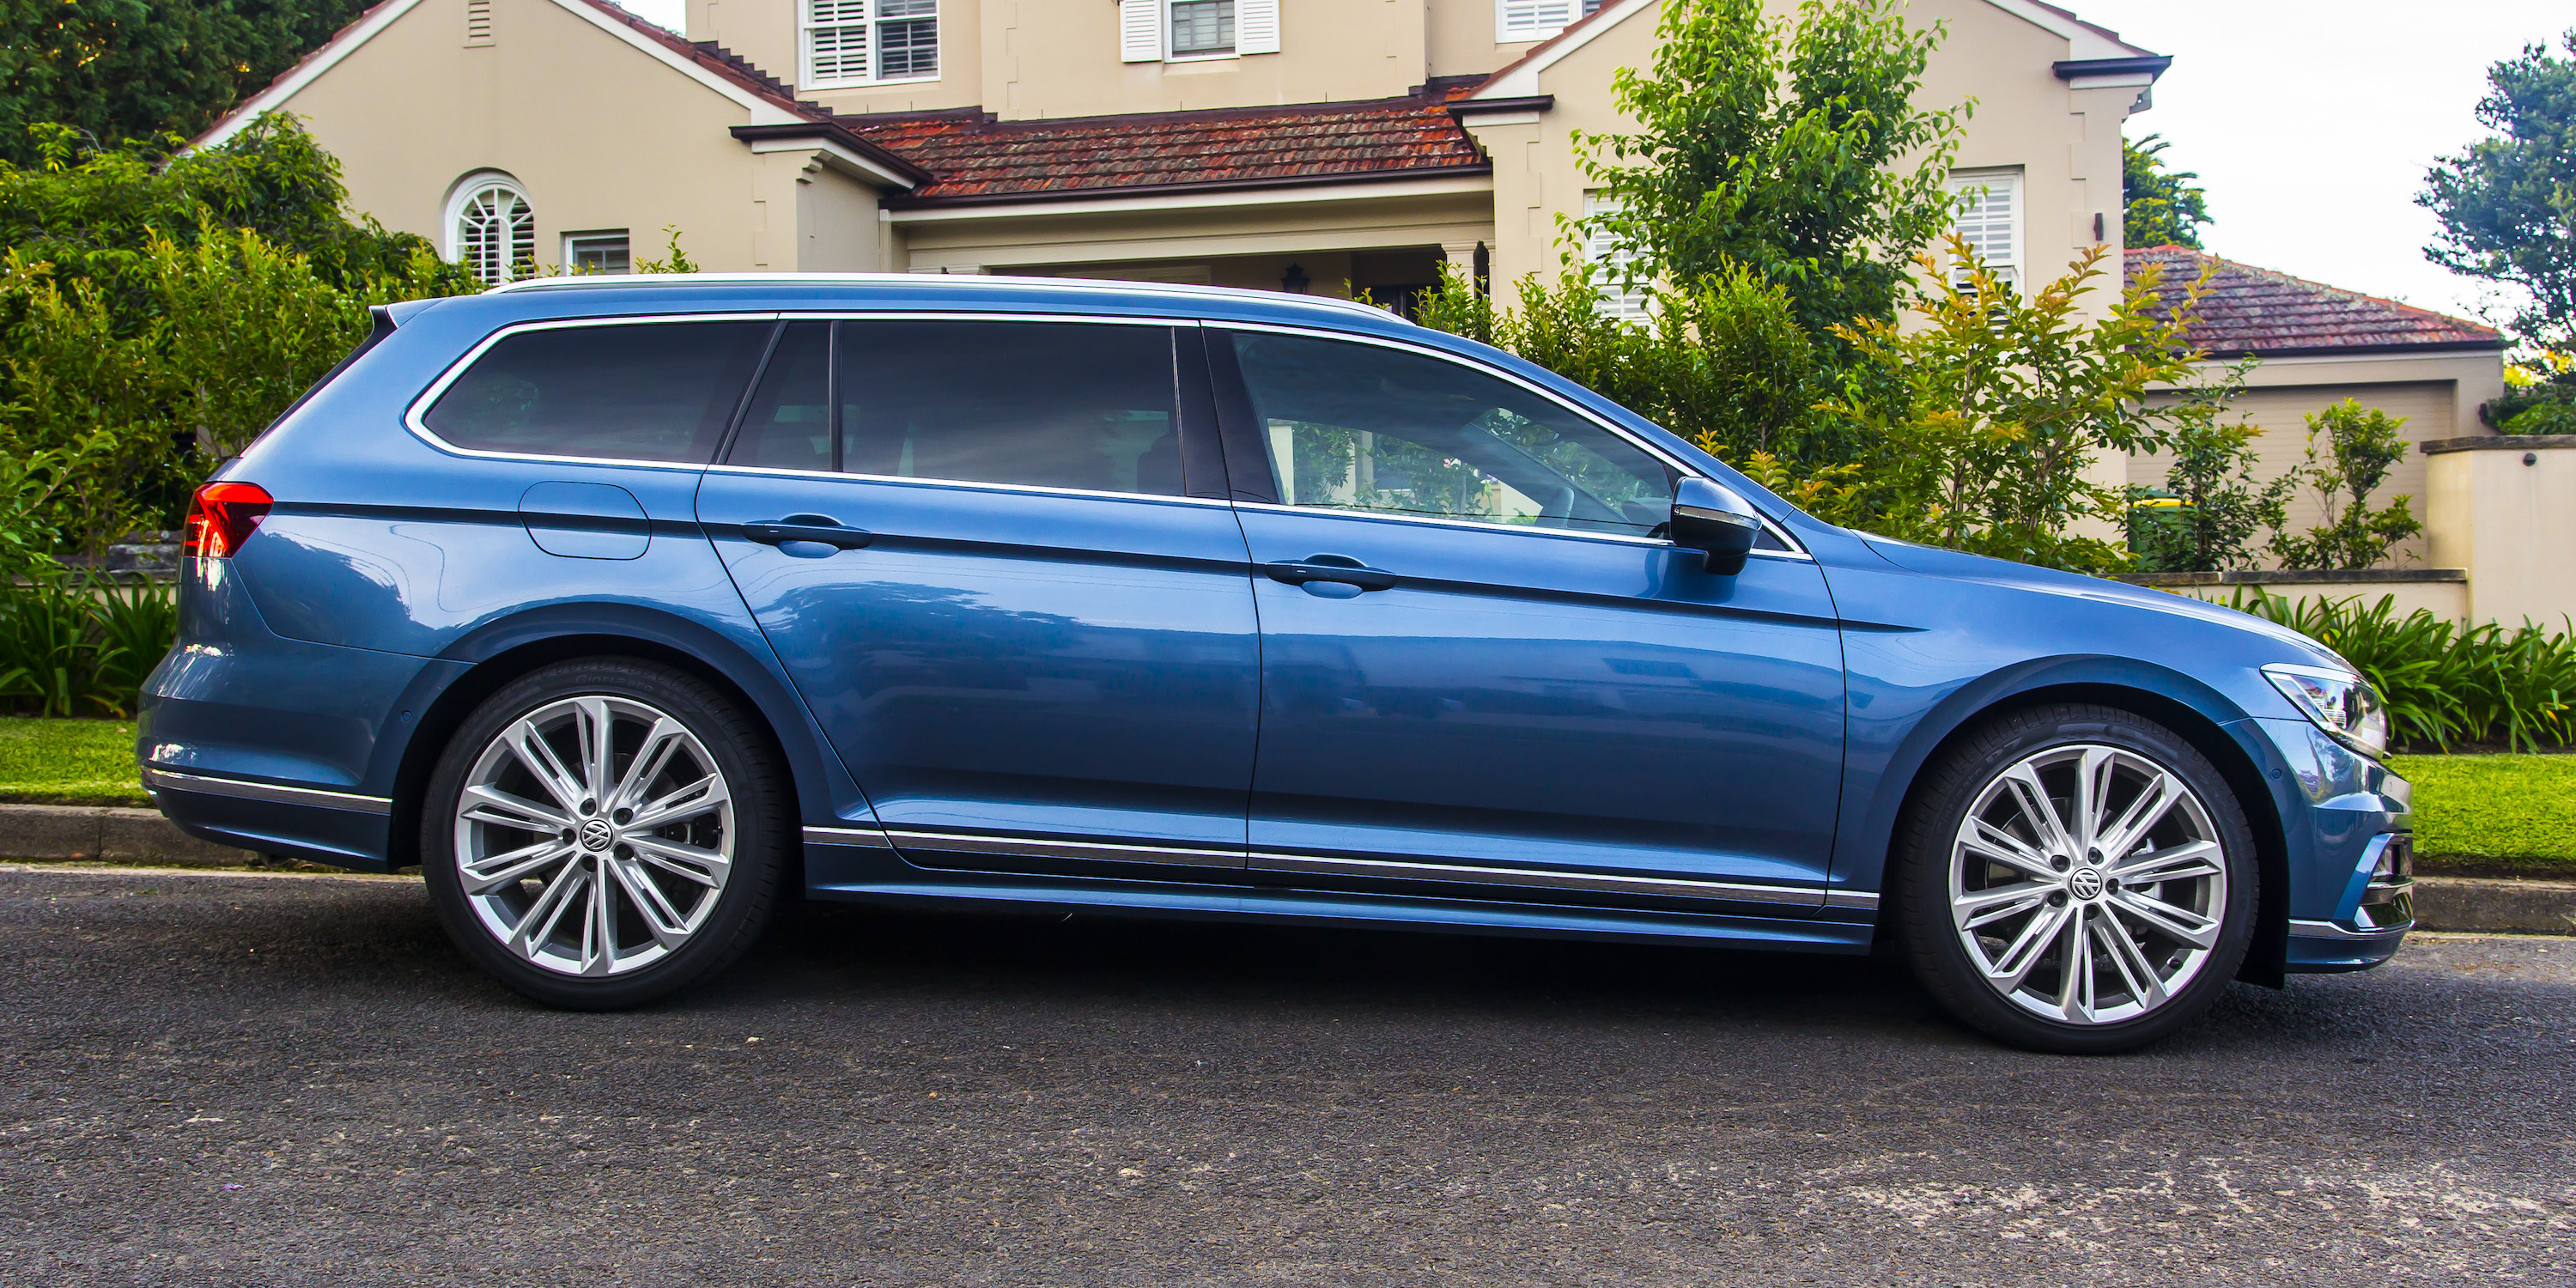 2016 volkswagen passat wagon review 140tdi highline. Black Bedroom Furniture Sets. Home Design Ideas